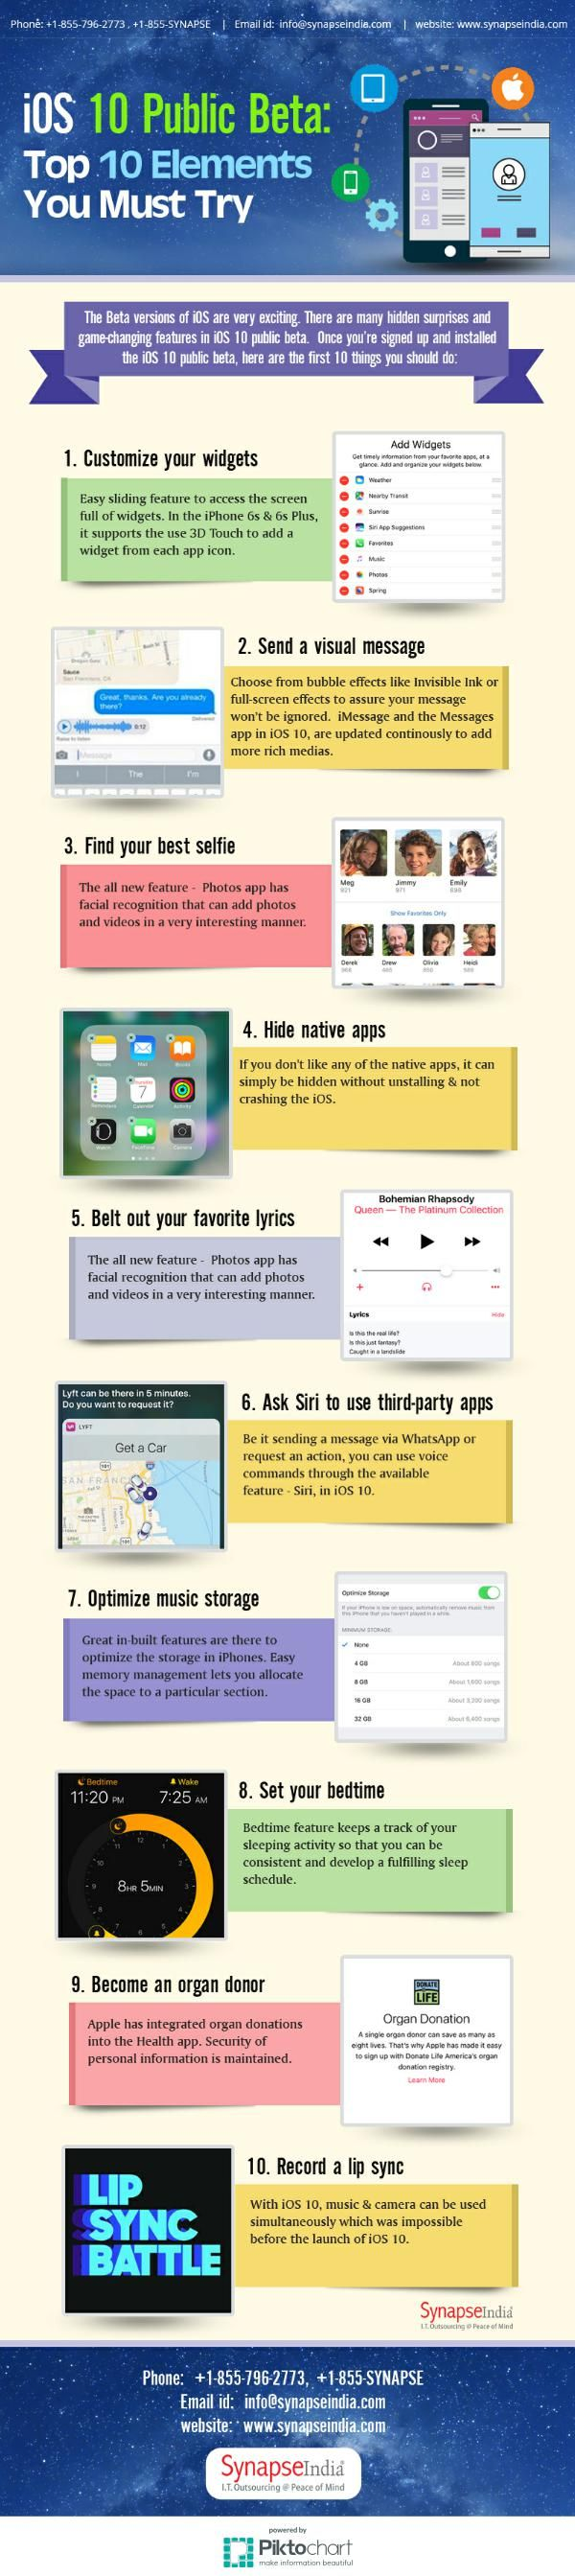 The Beta versions of iOS are very exciting. There are many hidden surprises and game-changing features in iOS 10 public beta.  Once you're signed up and installed the iOS 10 public beta, here are the first 10 things you should do: